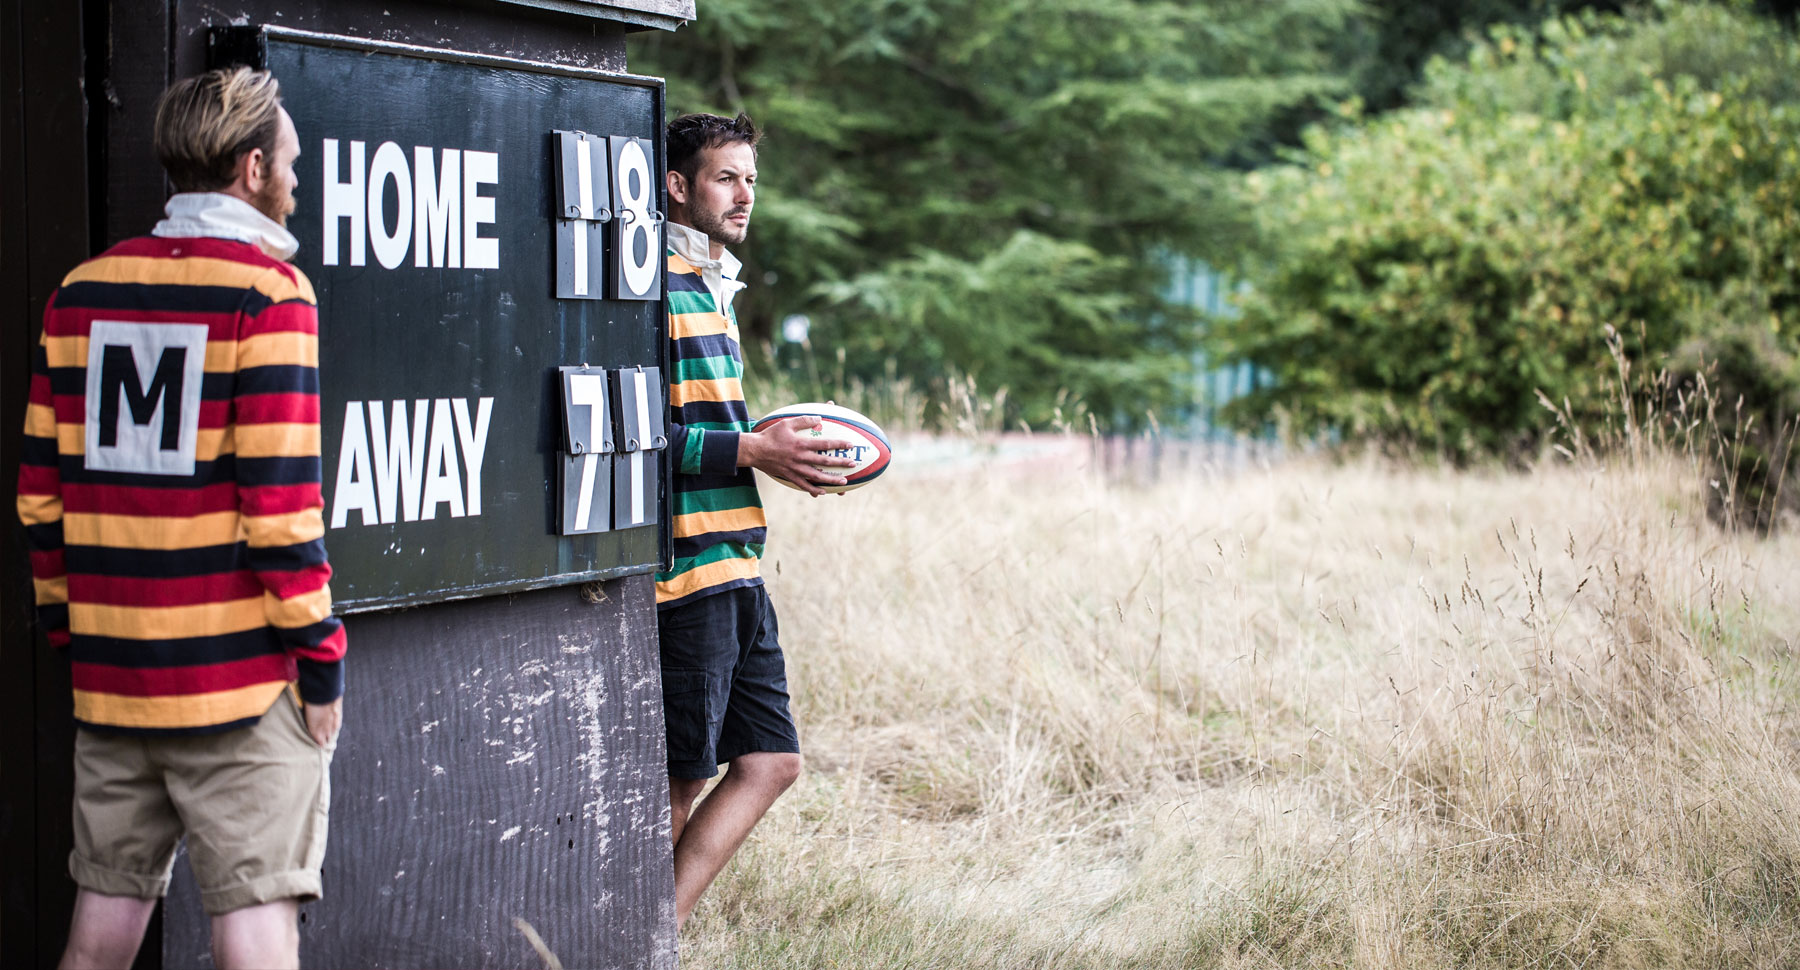 Rugby shirts by scoreboard